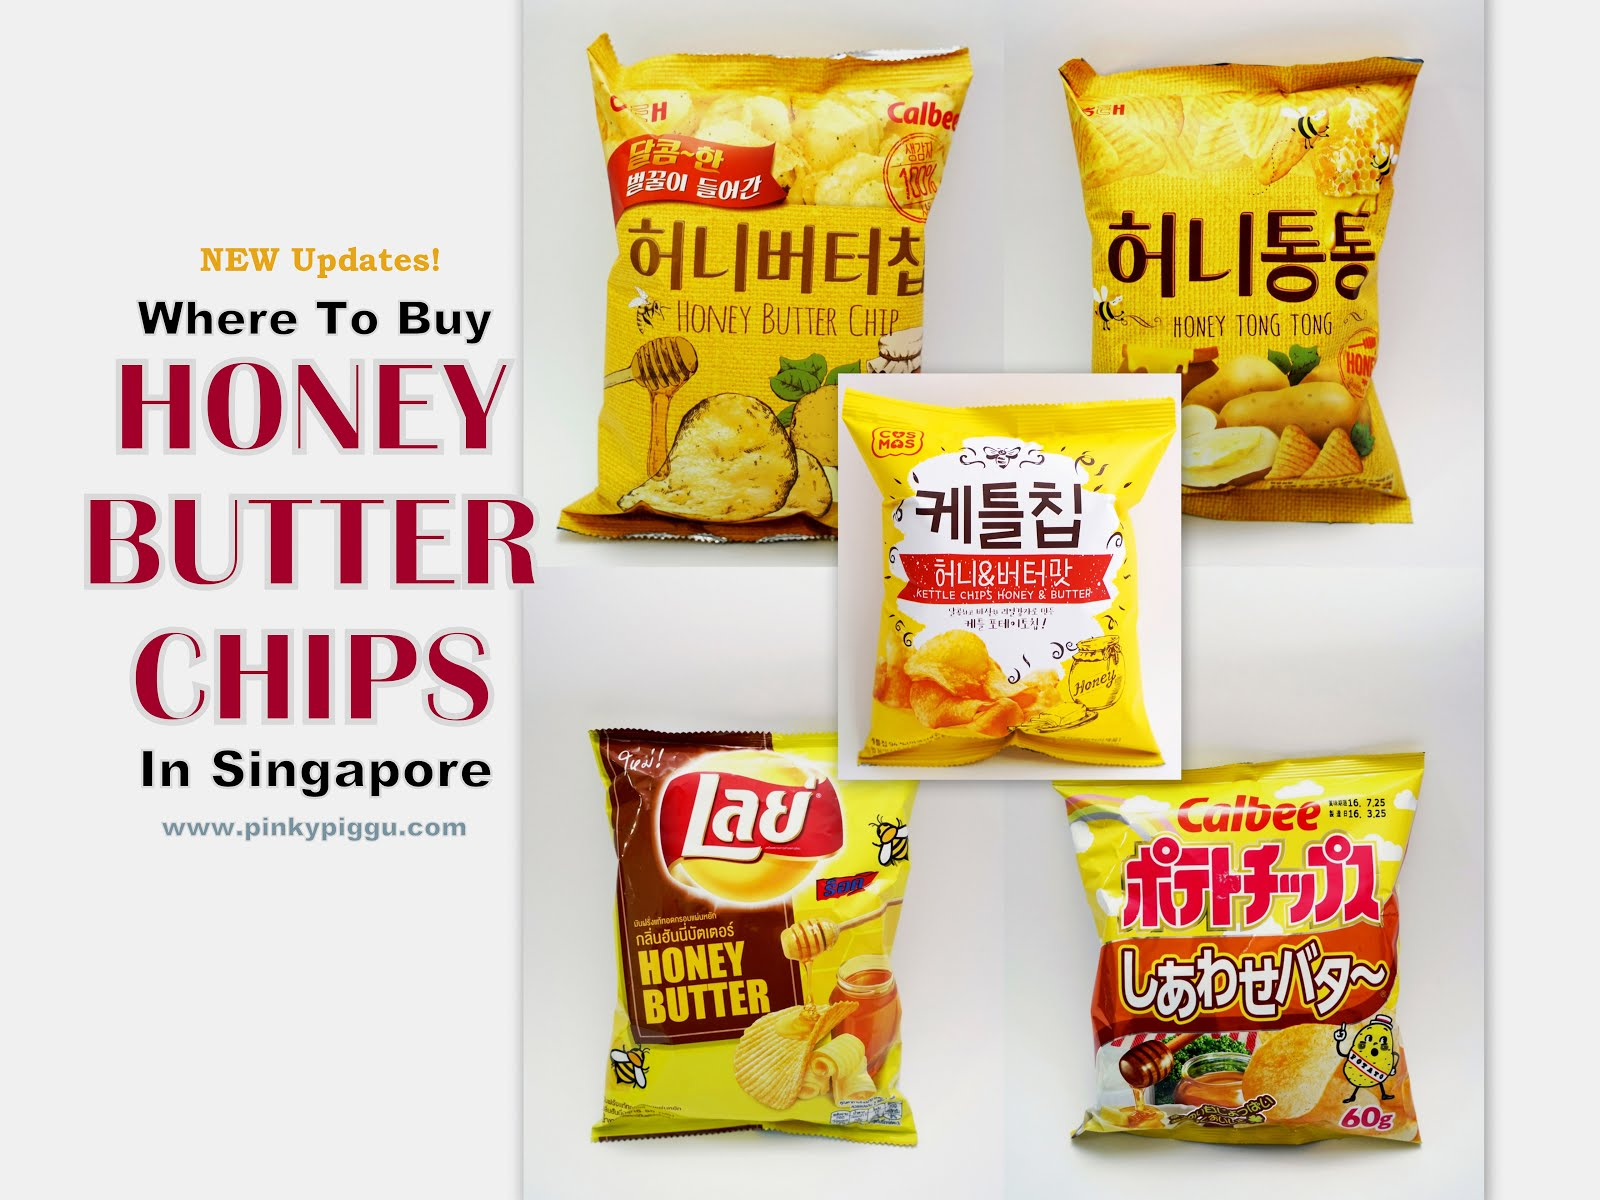 HONEY BUTTER CHIPS! Where To Buy The Popular Snacks In Singapore? Find Out Here!